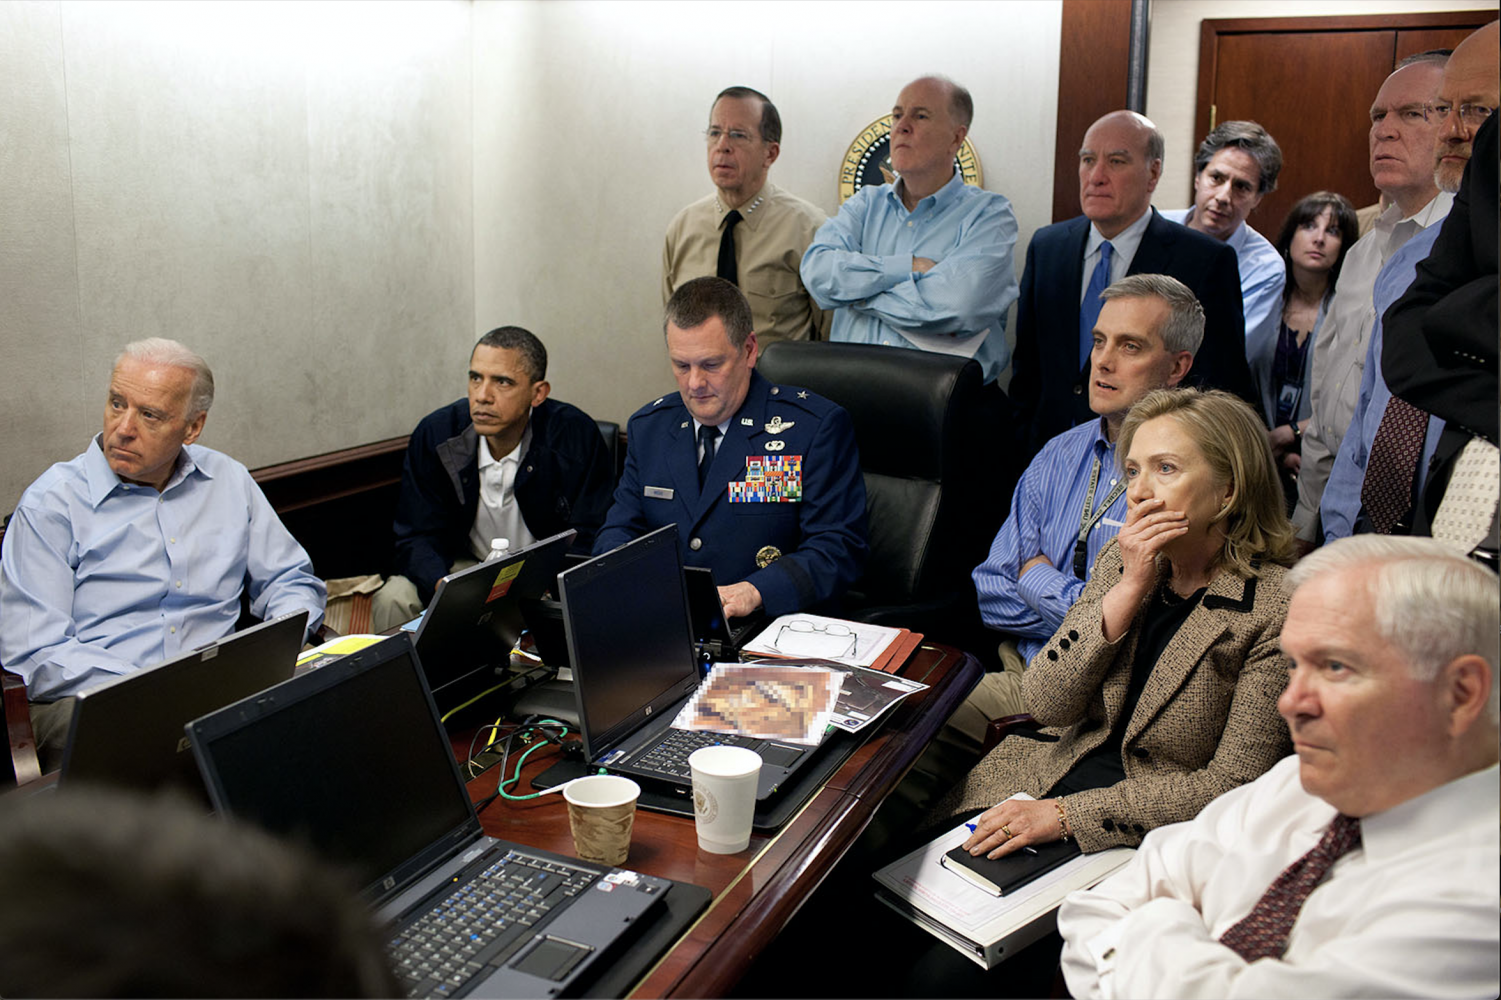 """President Barack Obama and Vice President Joe Biden, along with members of the national security team, receive an update on the mission against Osama bin Laden in the Situation Room of the White House, May 1, 2011. Seated, from left, are: Brigadier General Marshall B. """"Brad"""" Webb, Assistant Commanding General, Joint Special Operations Command; Deputy National Security Advisor Denis McDonough; Secretary of State Hillary Rodham Clinton; and Secretary of Defense Robert Gates. Standing, from left, are: Admiral Mike Mullen, Chairman of the Joint Chiefs of Staff; National Security Advisor Tom Donilon; Chief of Staff Bill Daley; Tony Blinken, National Security Advisor to the Vice President; Audrey Tomason Director for Counterterrorism; John Brennan, Assistant to the President for Homeland Security and Counterterrorism; and Director of National Intelligence James Clapper. Please note: a classified document seen in this photograph has been obscured. (Official White House Photo by Pete Souza)   This official White House photograph is being made available only for publication by news organizations and/or for personal use printing by the subject(s) of the photograph. The photograph may not be manipulated in any way and may not be used in commercial or political materials, advertisements, emails, products, promotions that in any way suggests approval or endorsement of the President, the First Family, or the White House."""